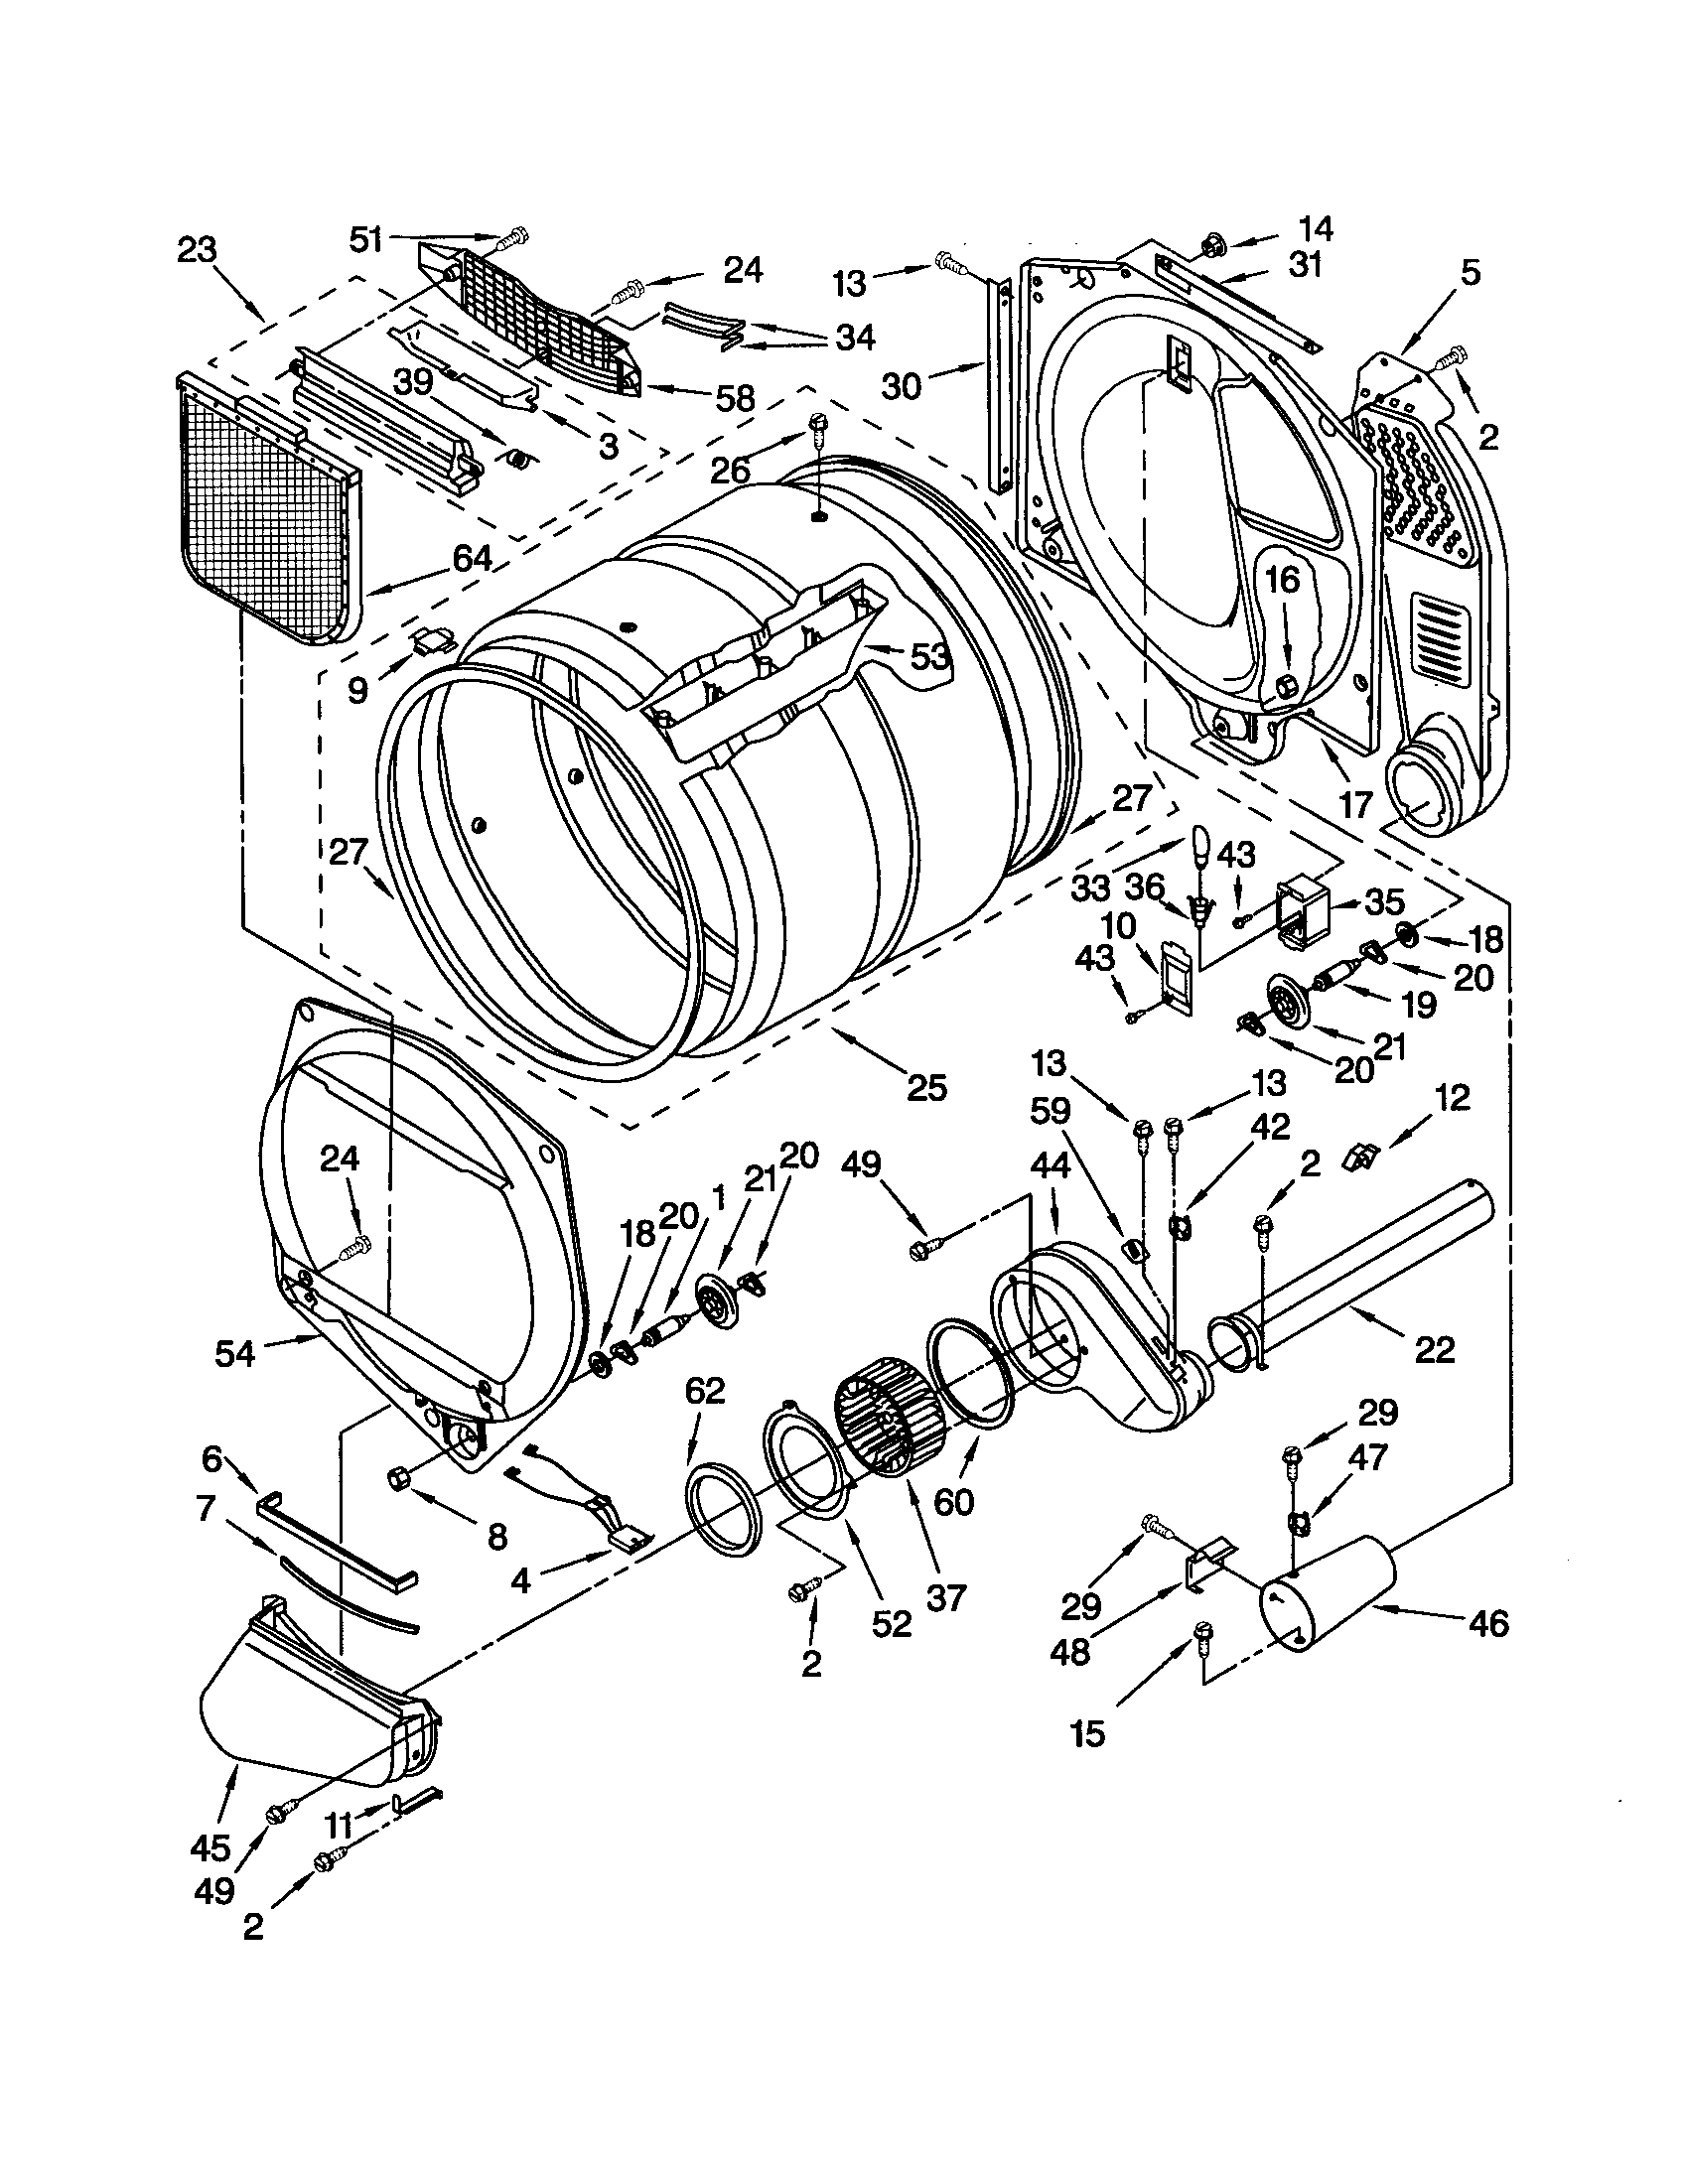 medium resolution of fuse location moreover whirlpool dryer belt diagram on kenmore diagram further kenmore dryer fuse location moreover whirlpool dryer